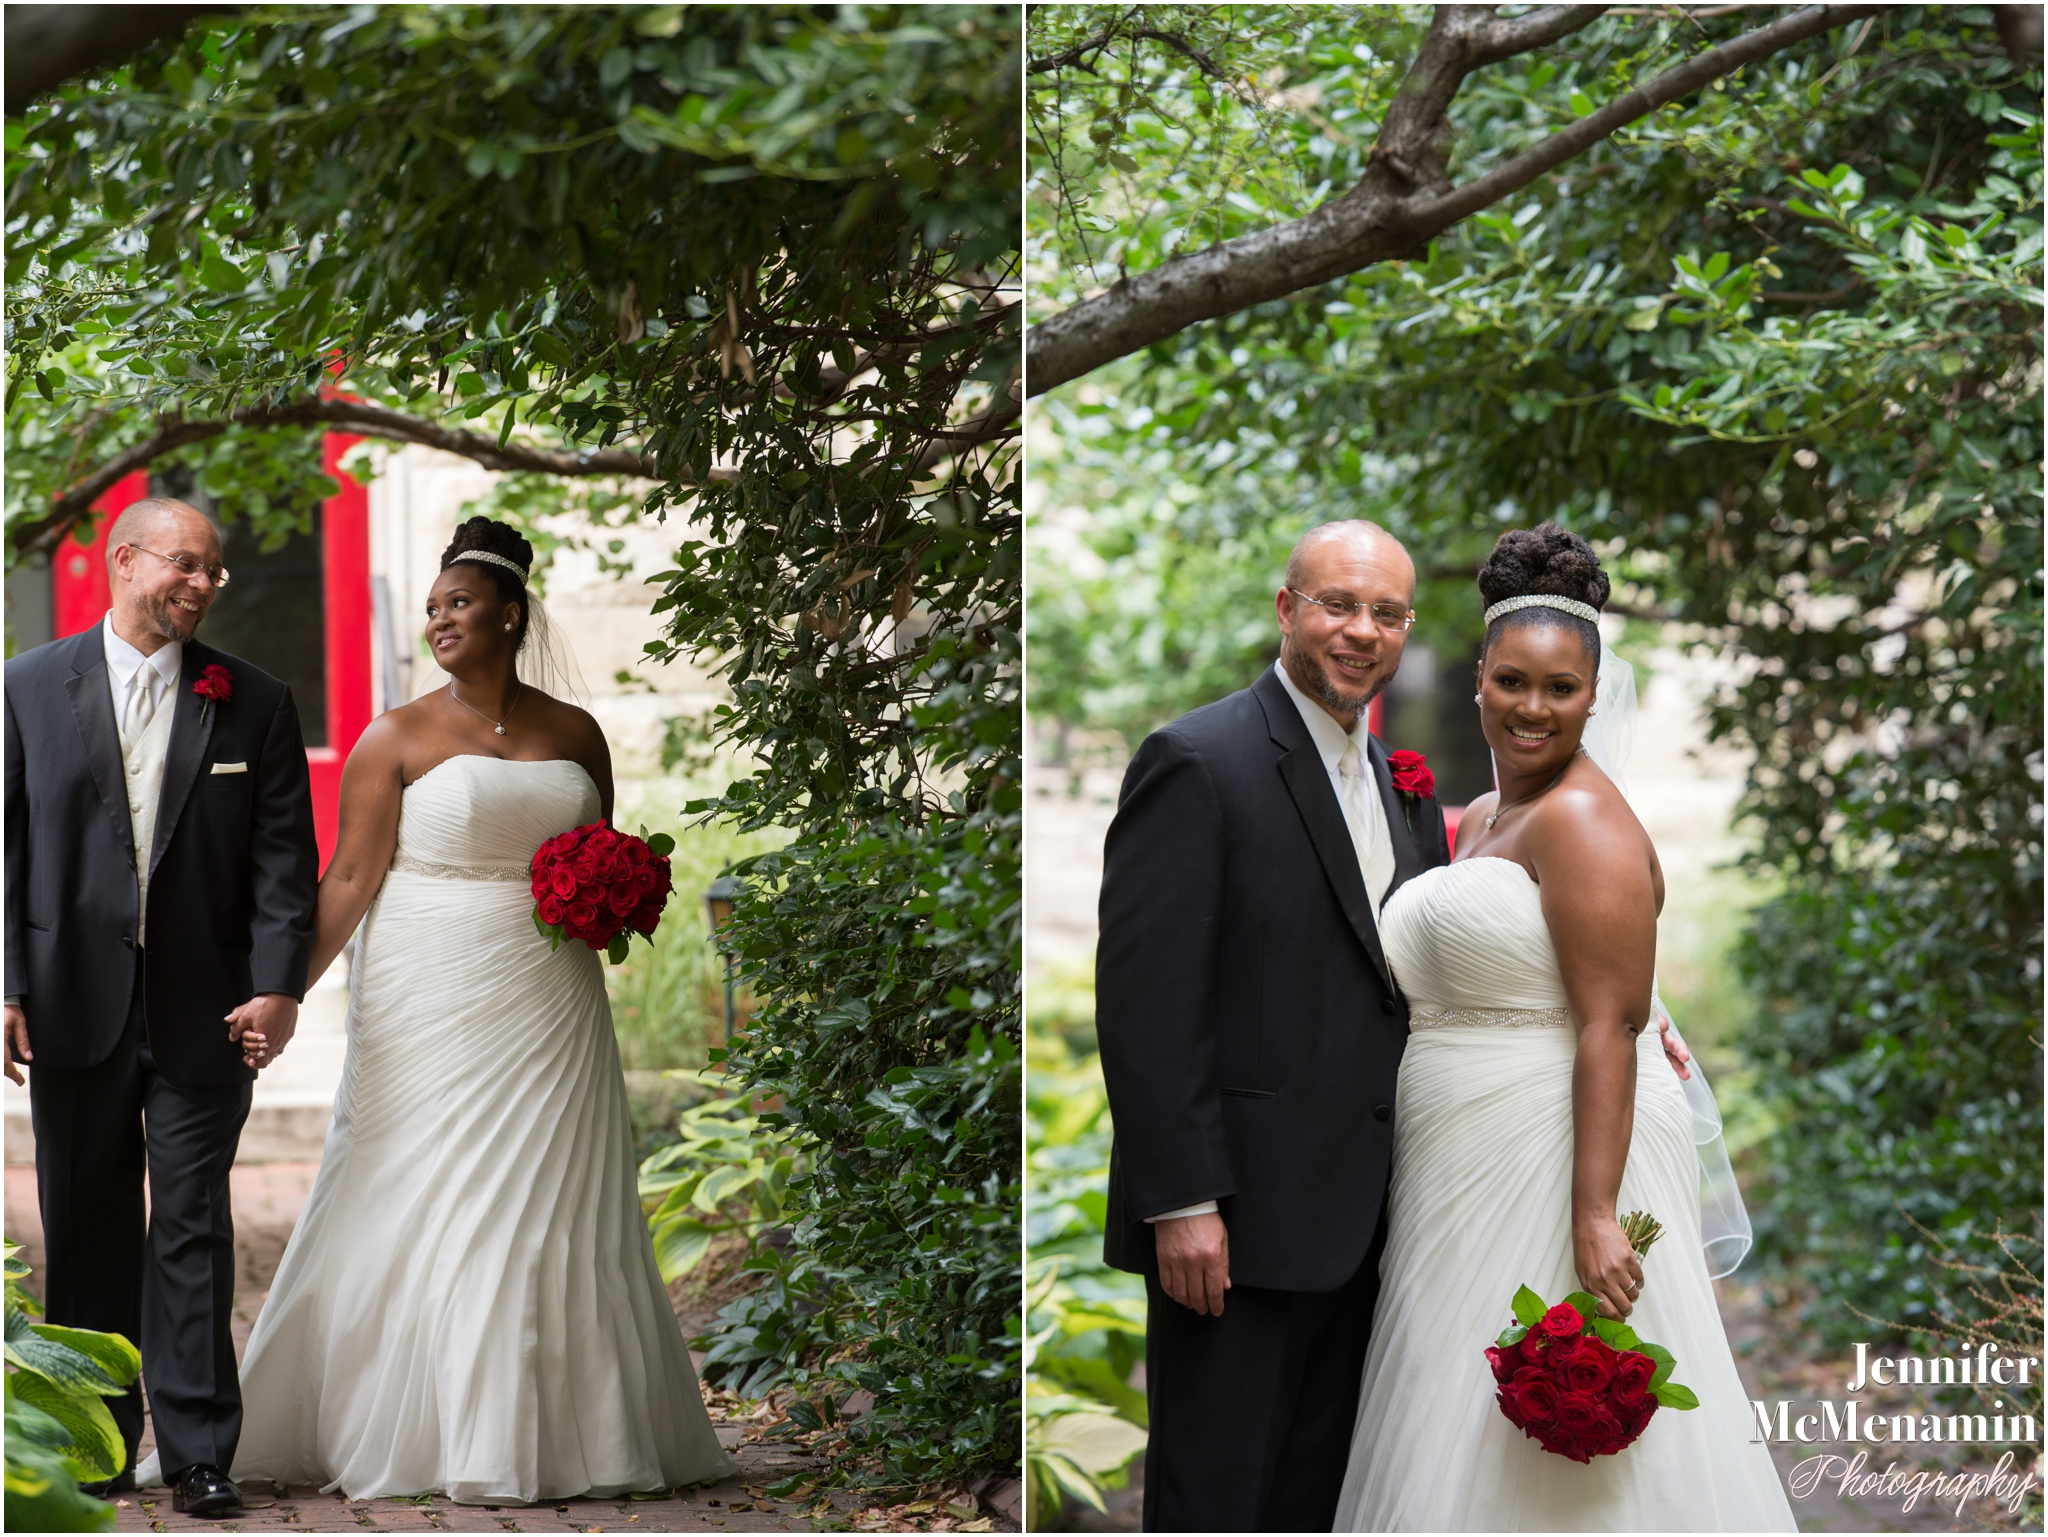 018_JarmonTurner_00797-0170_JenniferMcMenaminPhotography_Chase-Court_Gertrudes-at-the-Baltimore-Museum-Of-Art_Gertrudes-at-the-BMA_Baltimore-wedding-photography_Baltimore-wedding-photographer